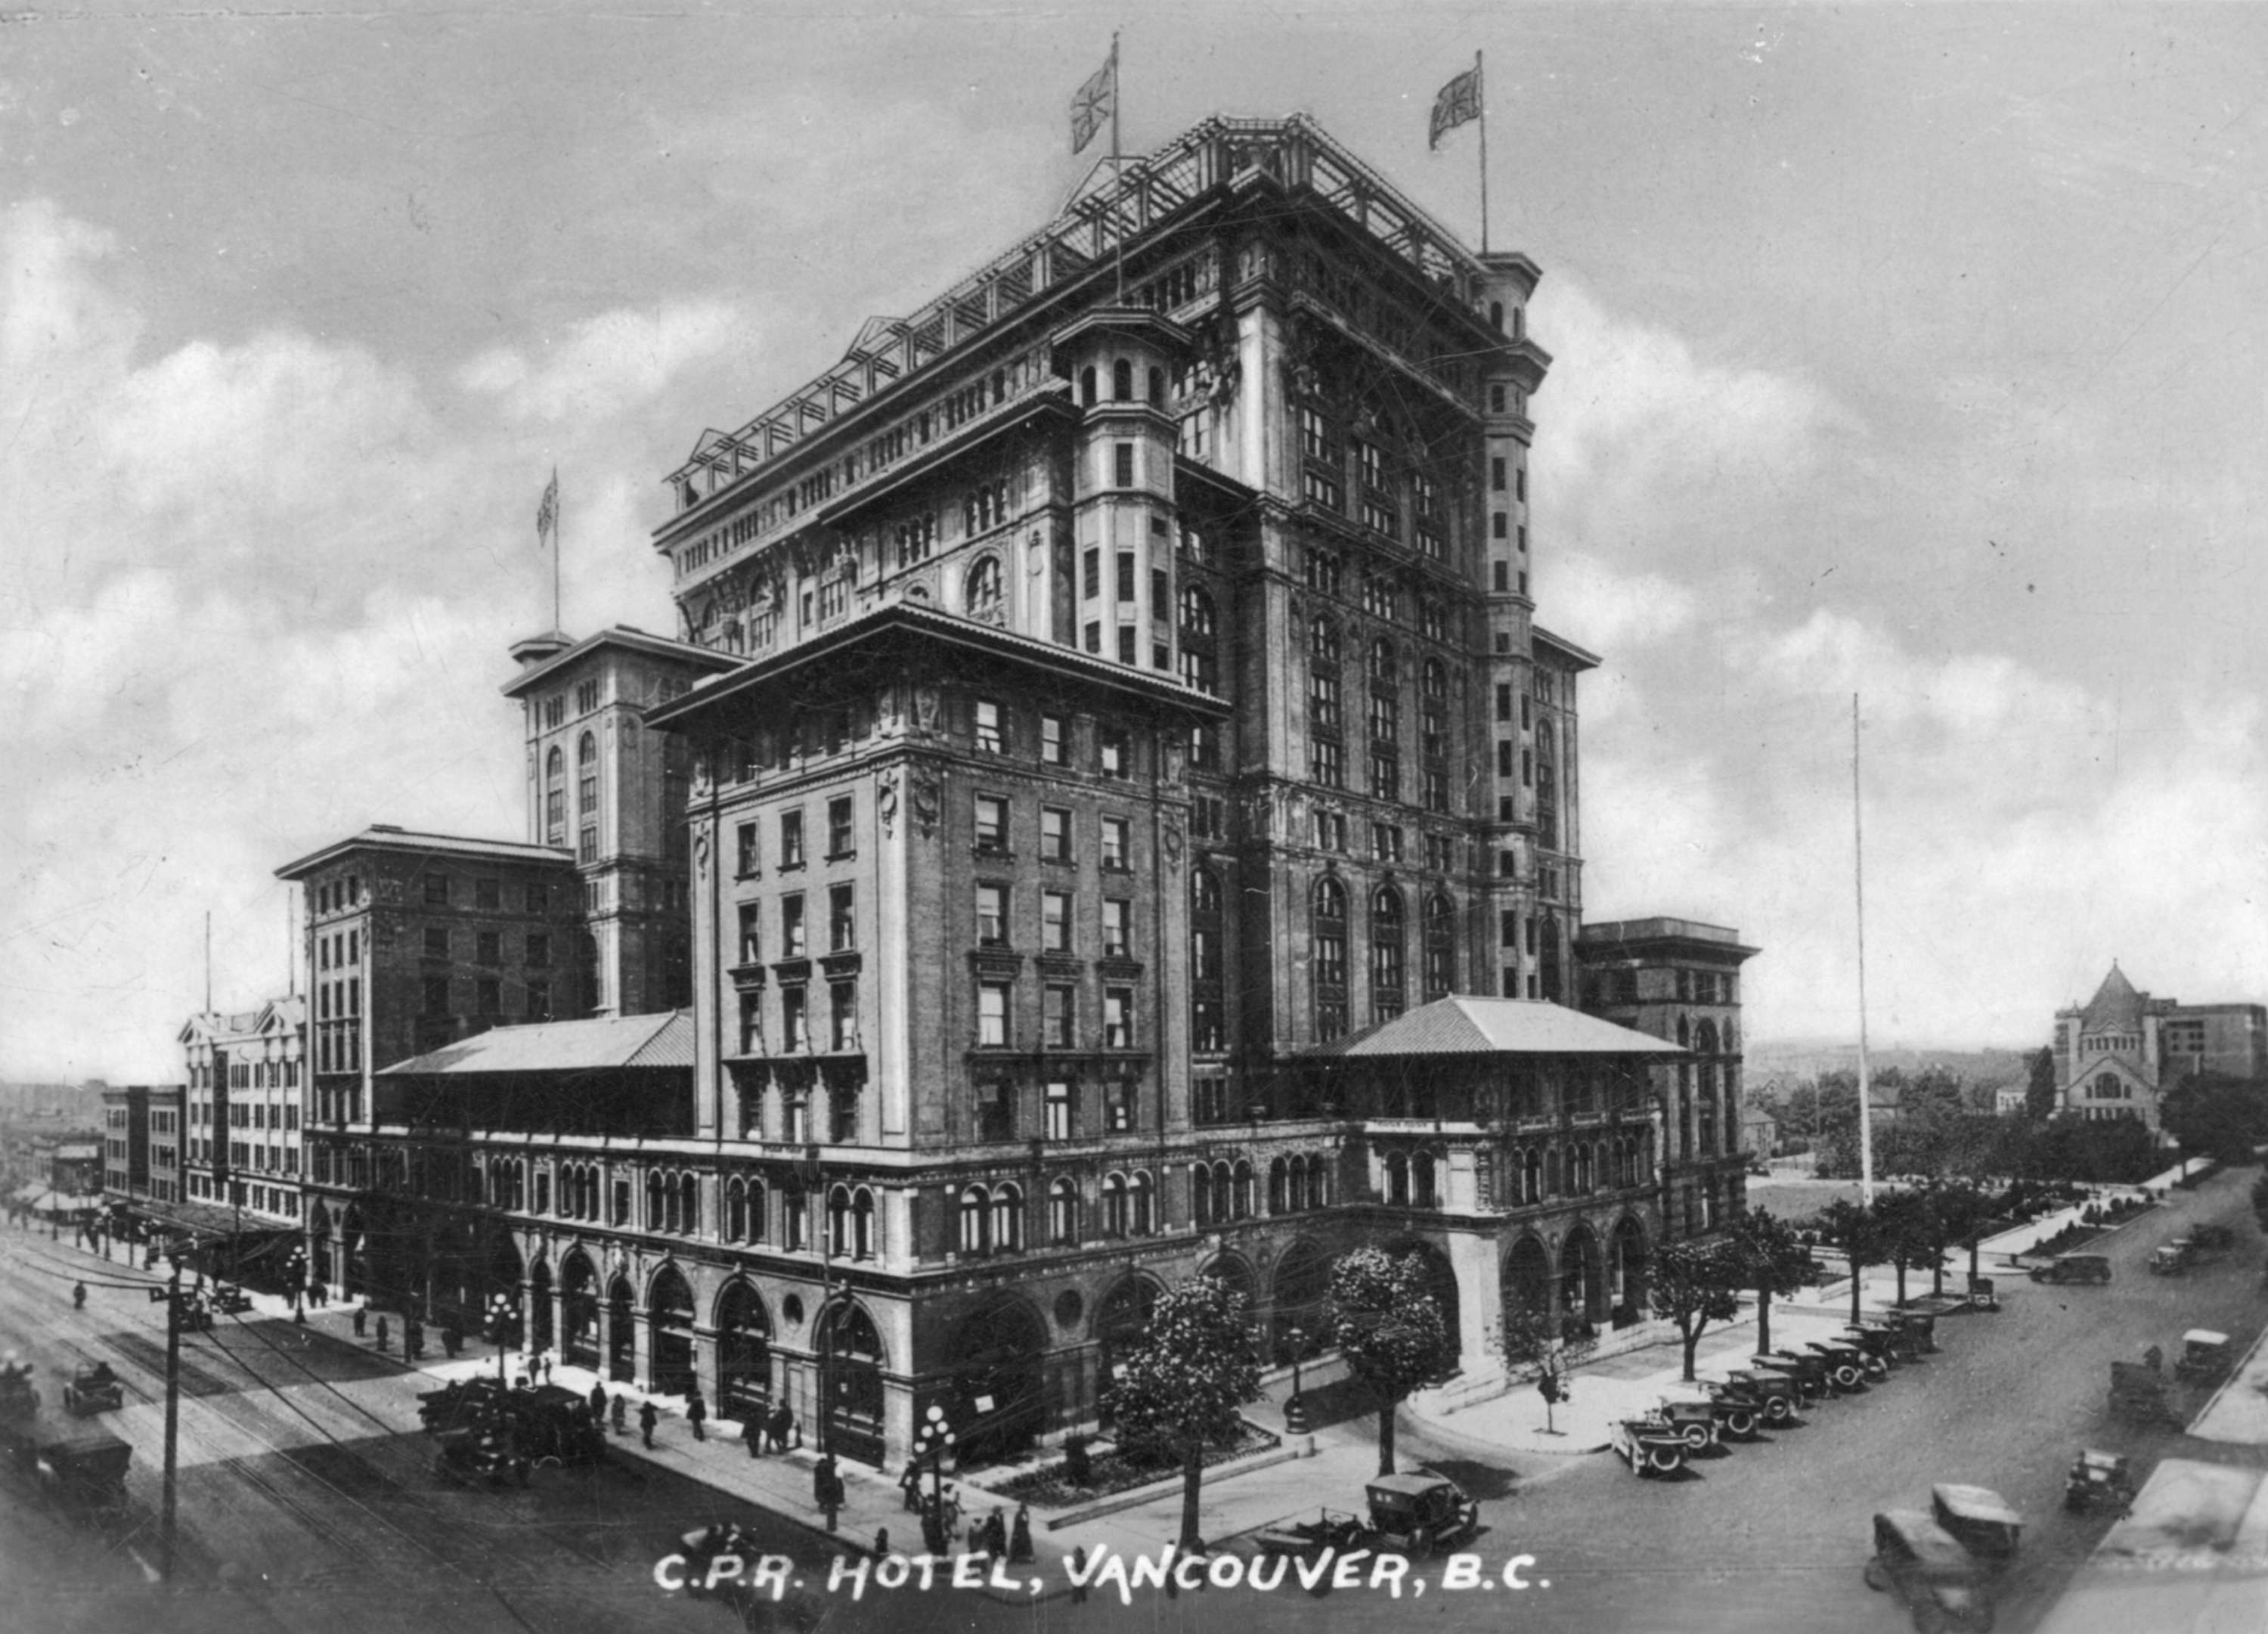 C p r hotel vancouver bc city of vancouver archives open original digital object xflitez Image collections